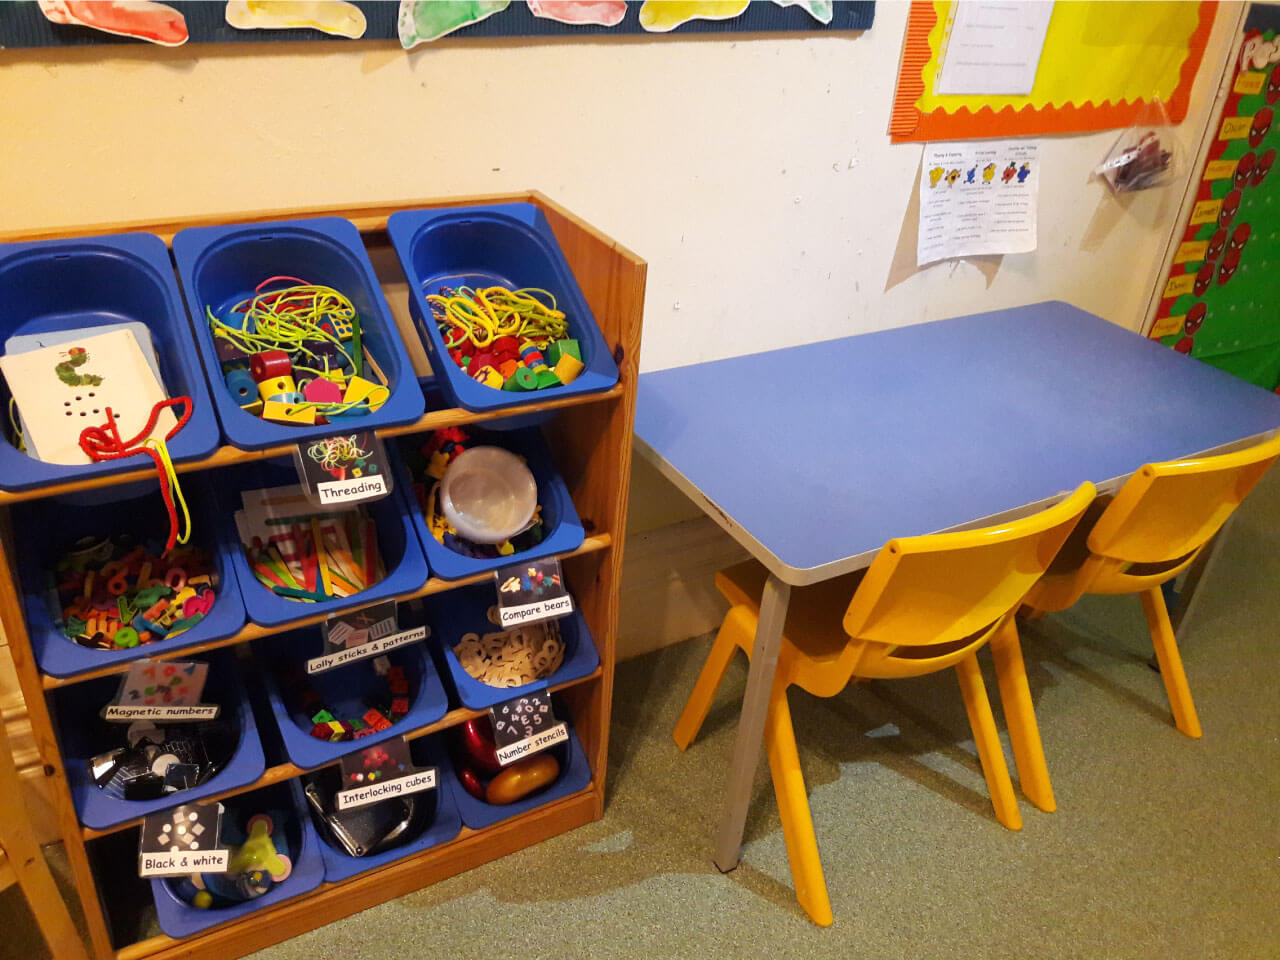 Arts and crafts area for preschool students